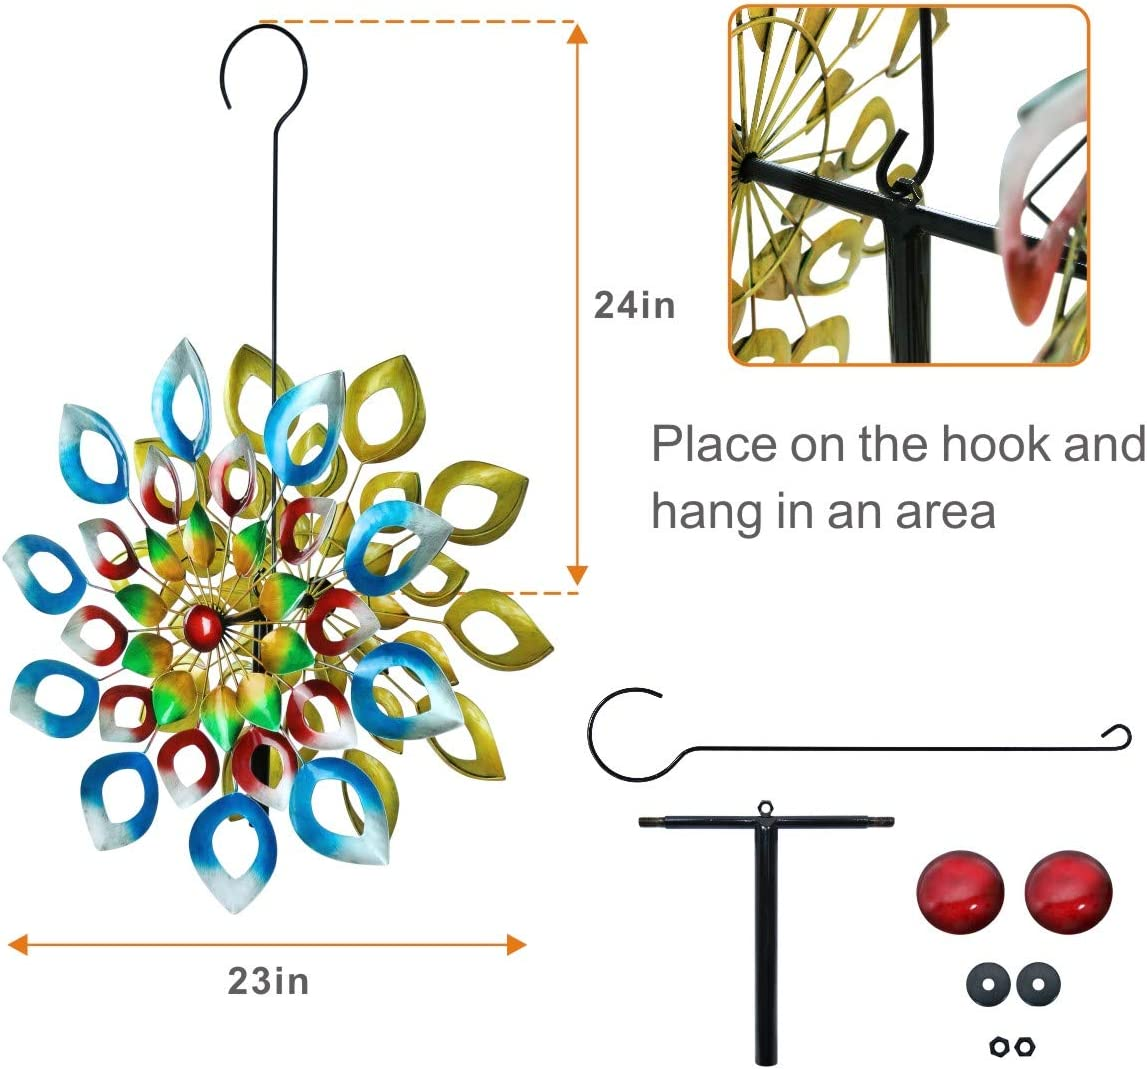 3D Kinetic Wind Spinners with Stable Stake Metal Garden Spinner with Reflective Painting Unique Lawn Ornament Wind Mill for Outdoor Yard Lawn Garden Decorations Multi-Color